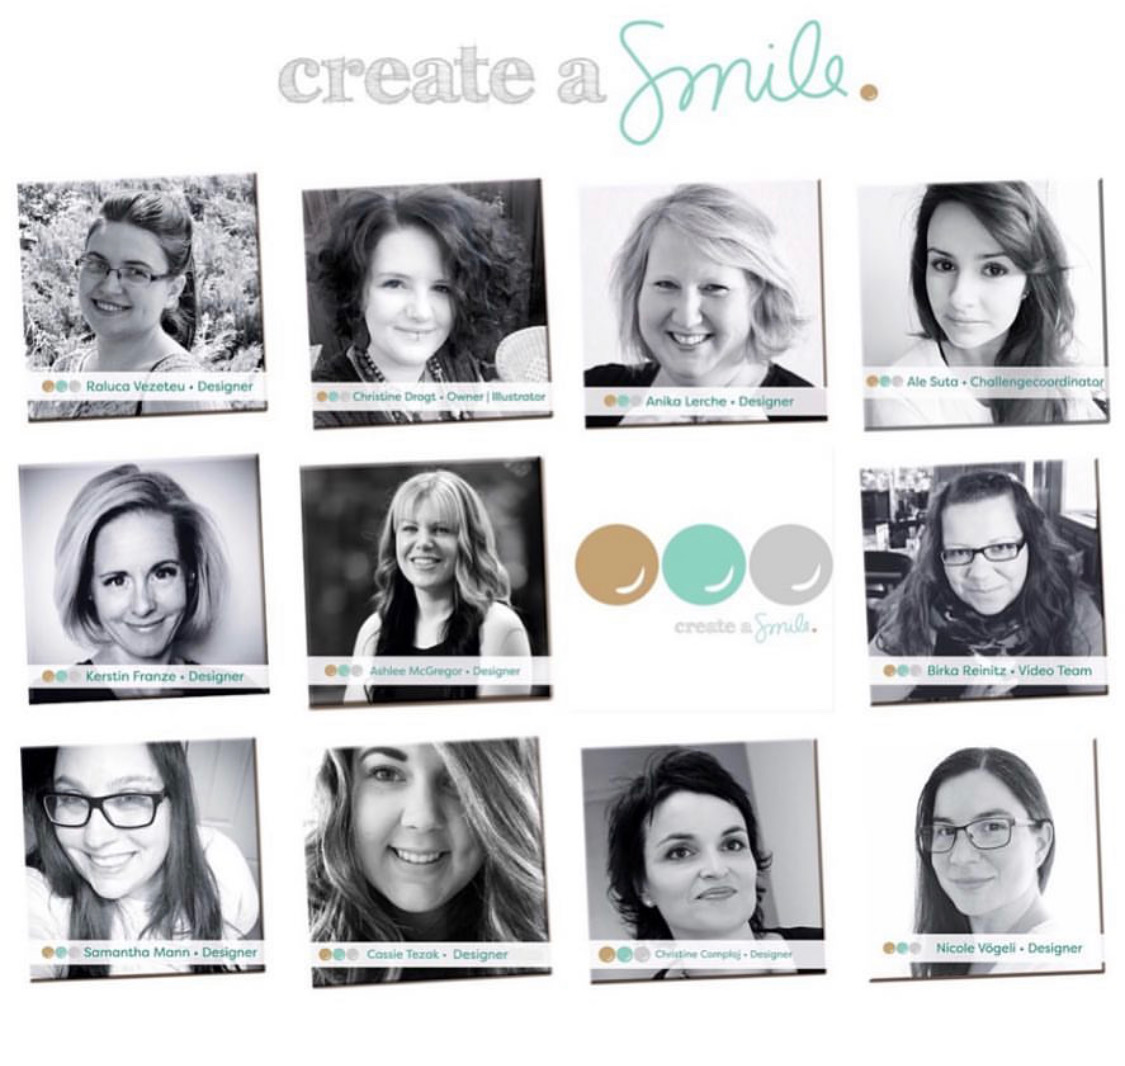 DT member for : Create a smile